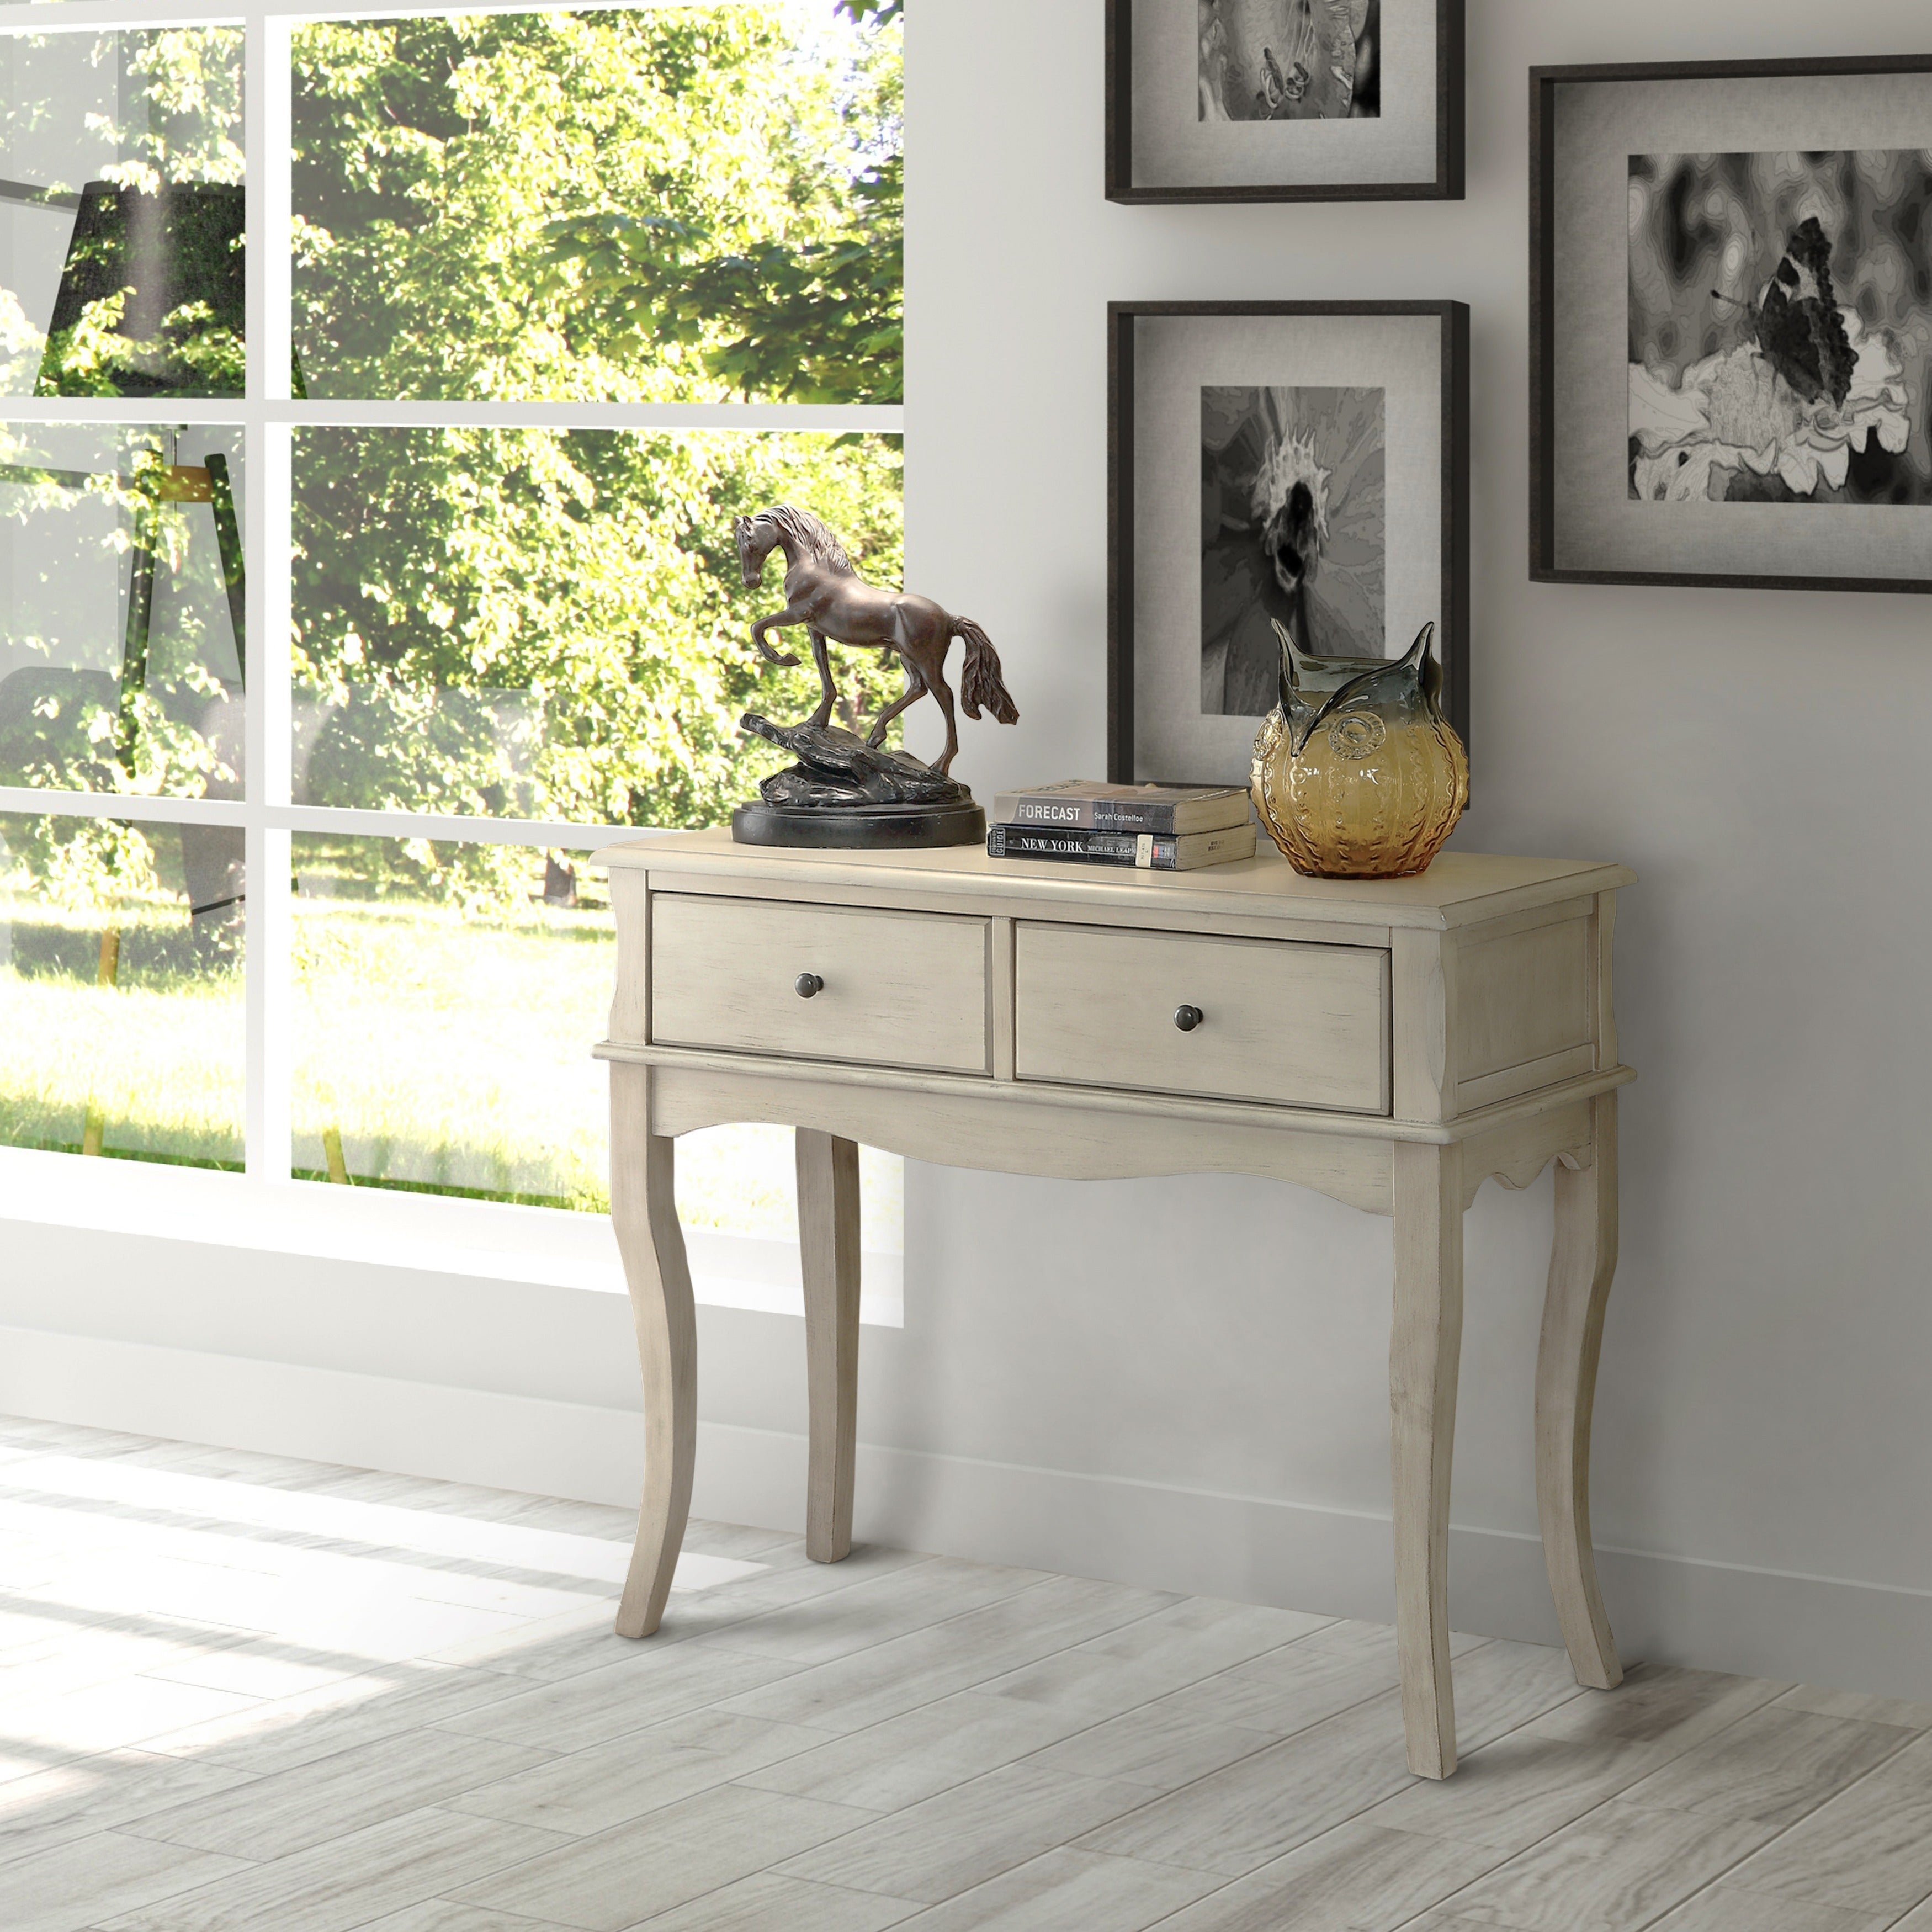 Shop Maison Rouge Daumal Vintage Style 2 Drawer Entryway Table   On Sale    Free Shipping Today   Overstock.com   20370470